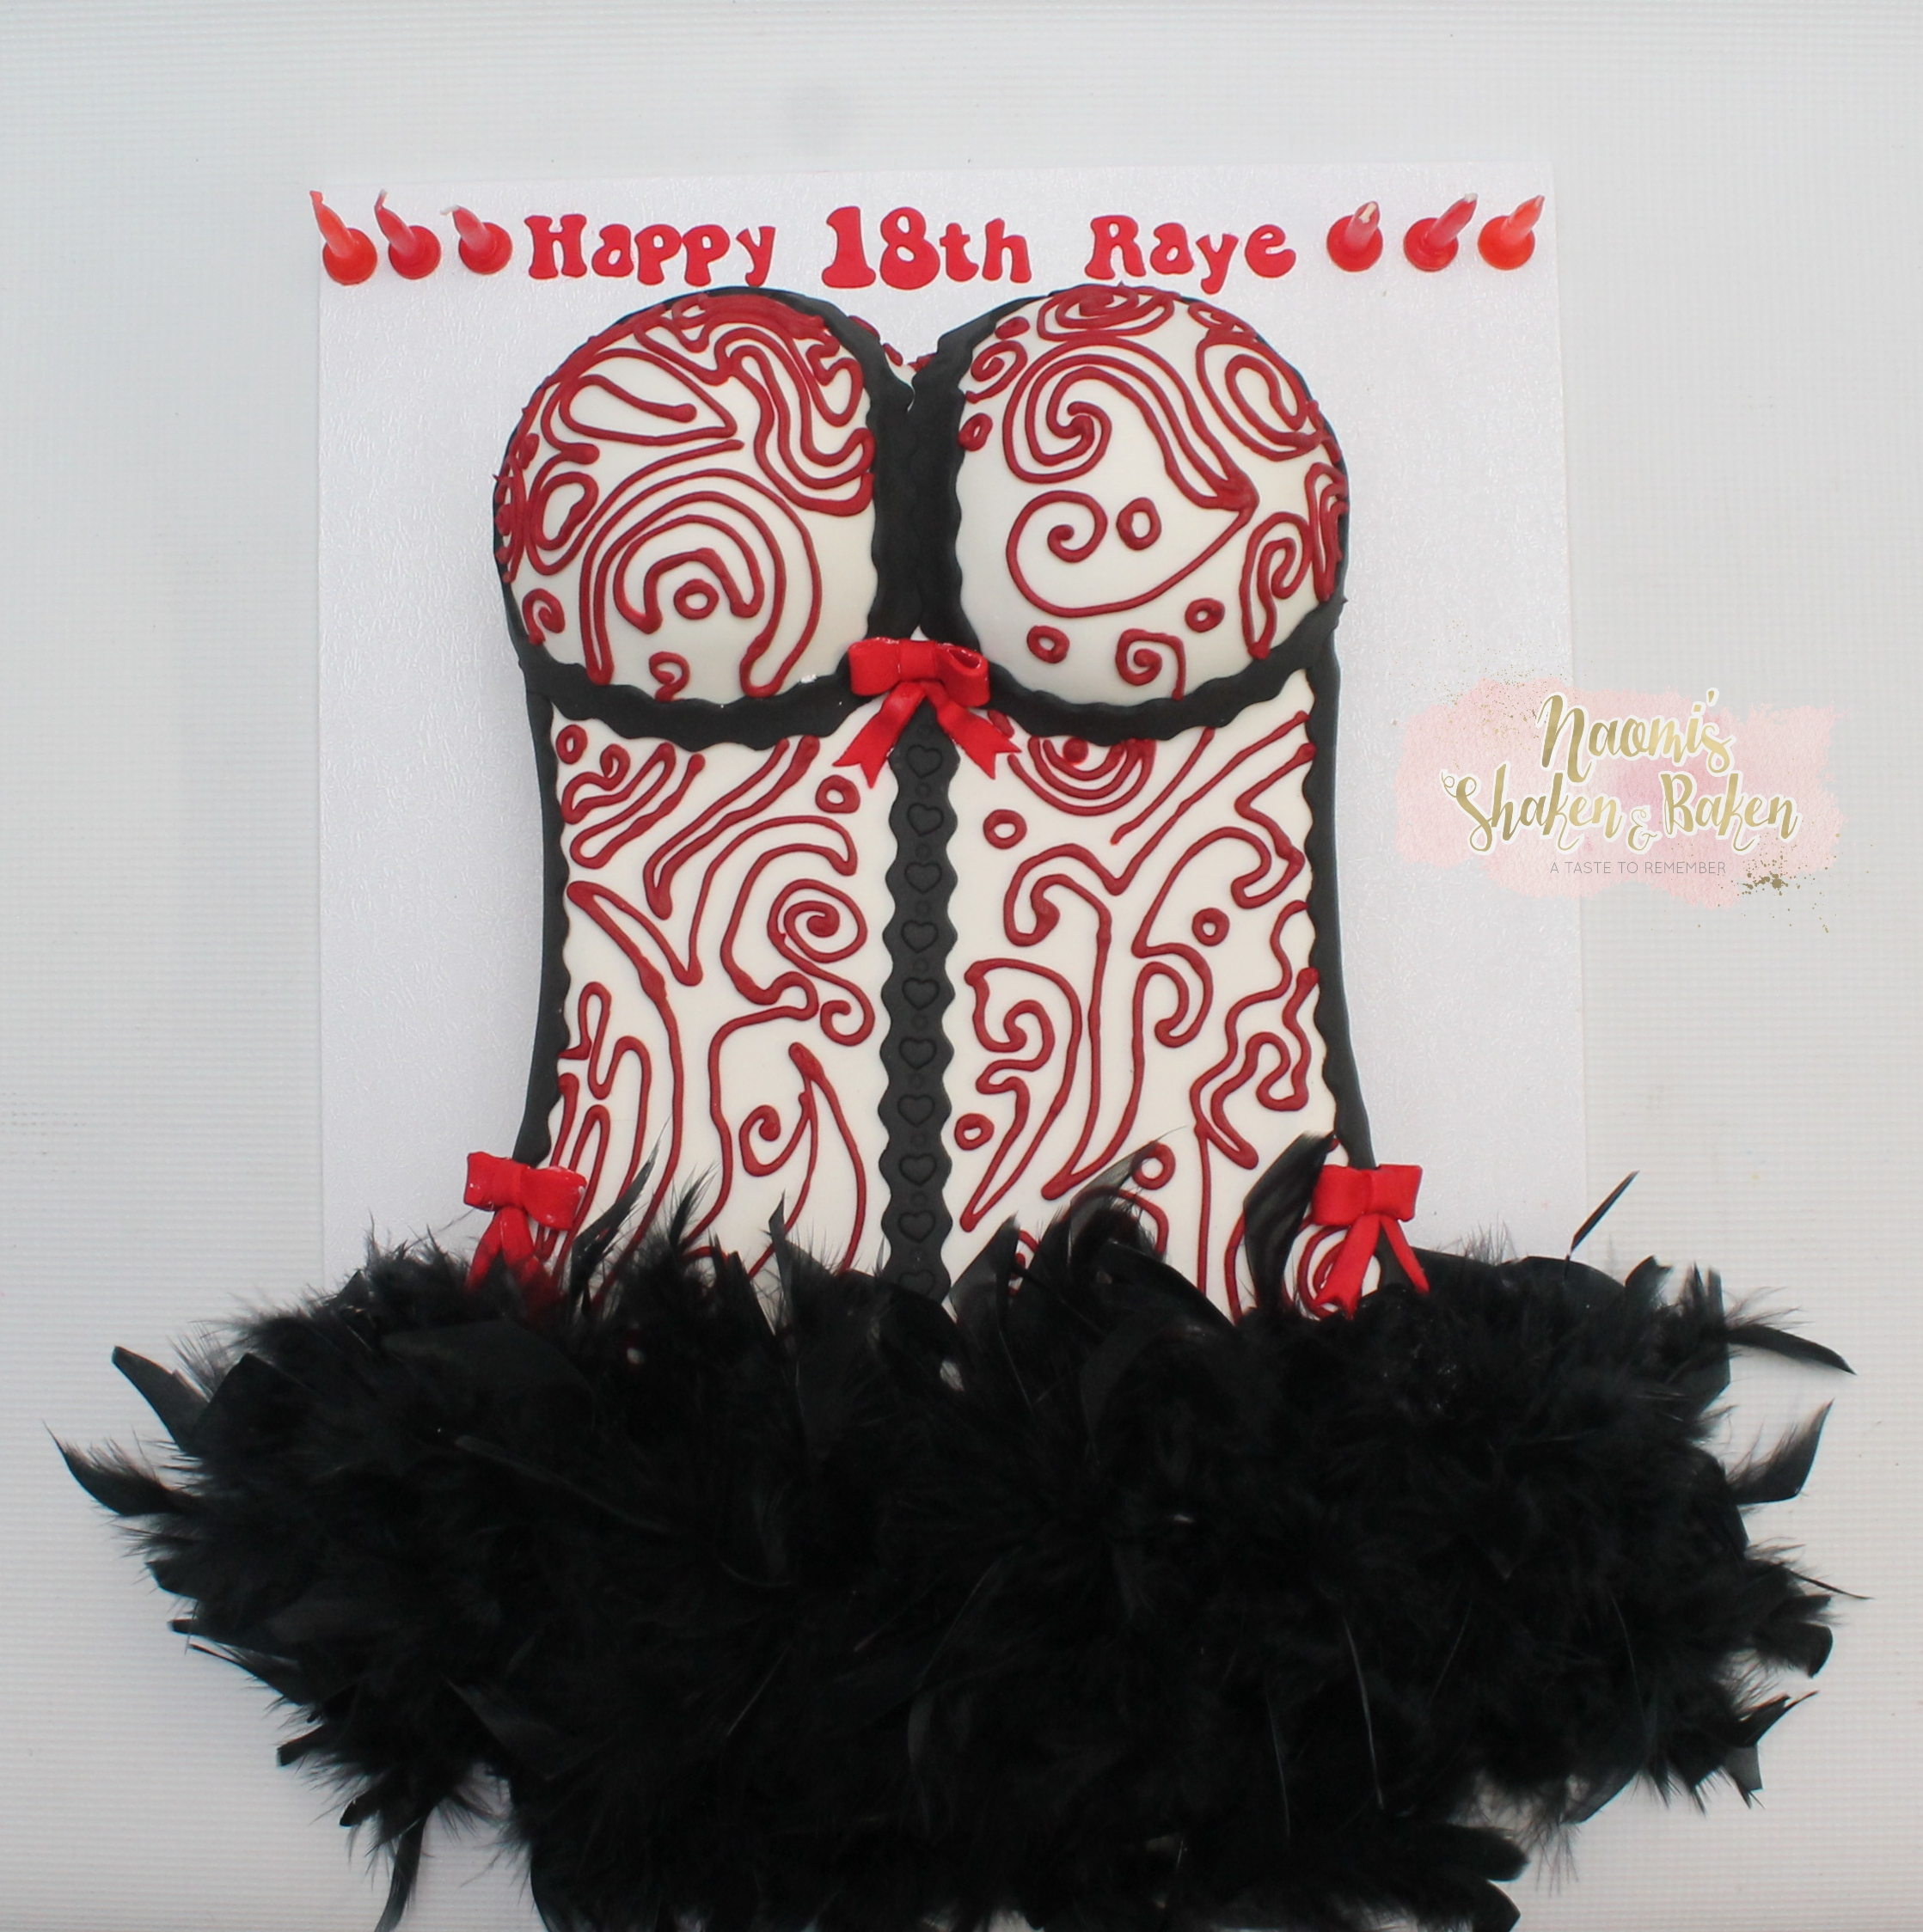 Corset Cake for 18th birthday